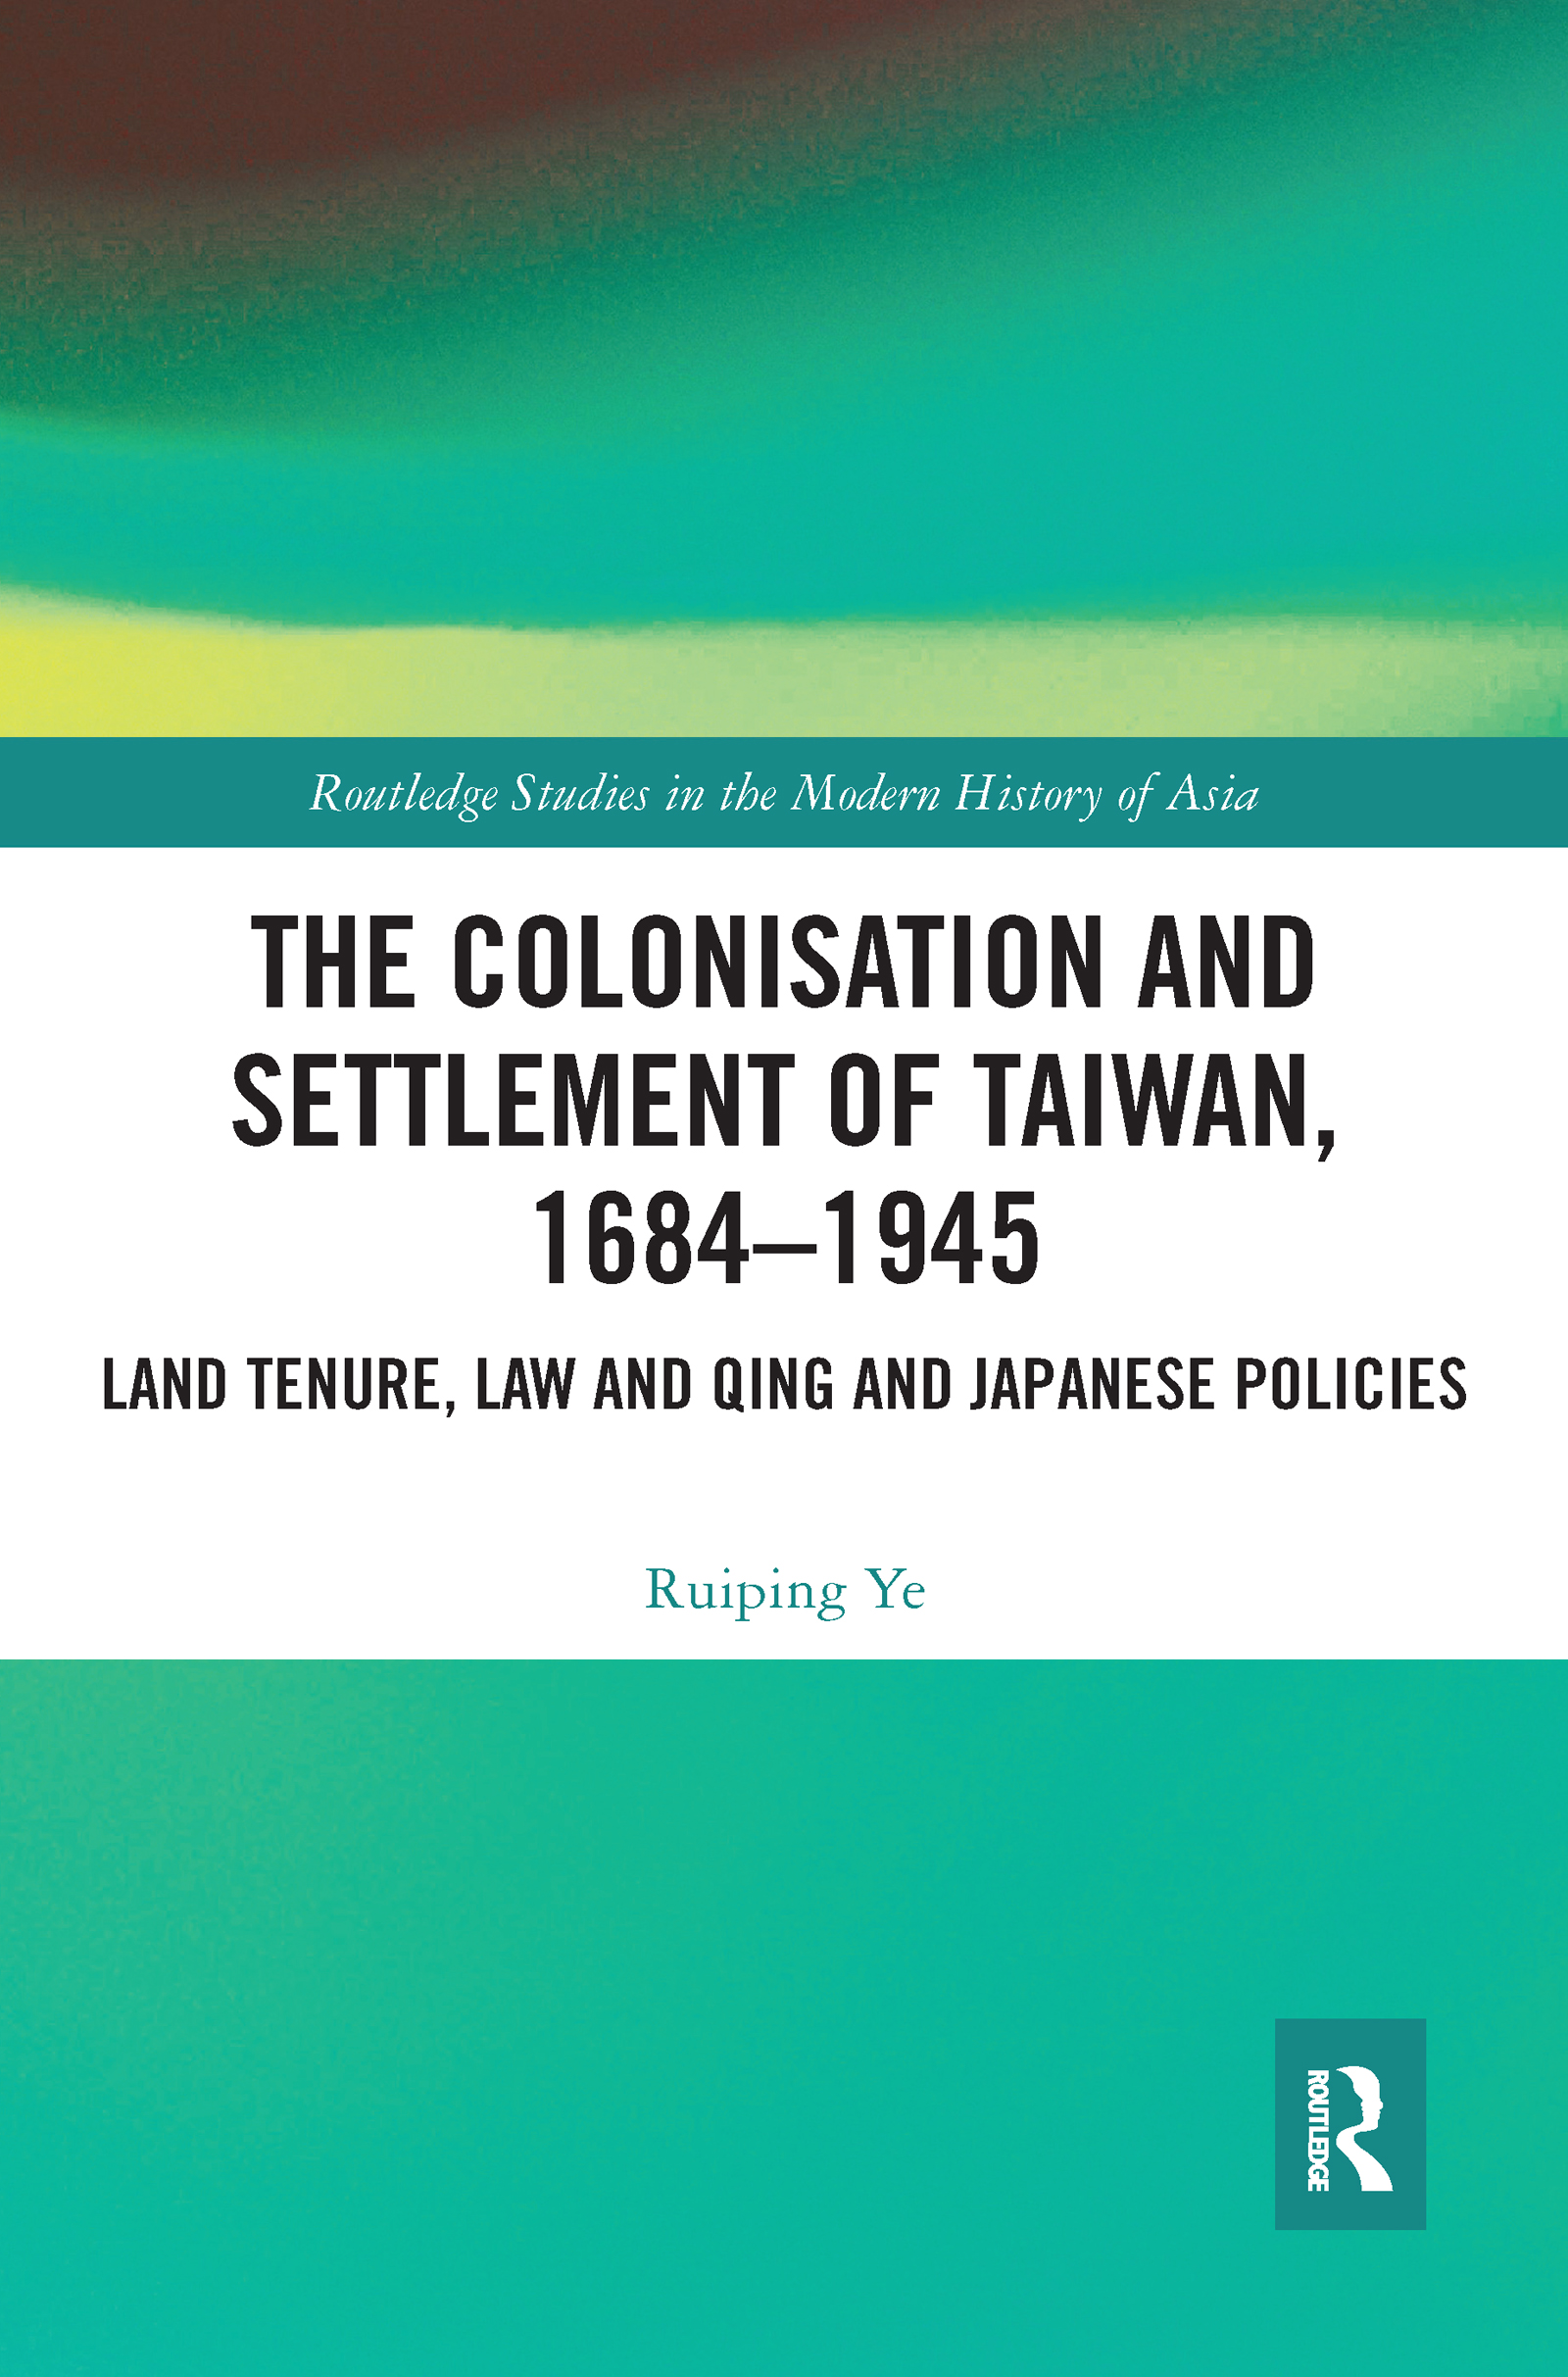 The Colonisation and Settlement of Taiwan, 1684–1945